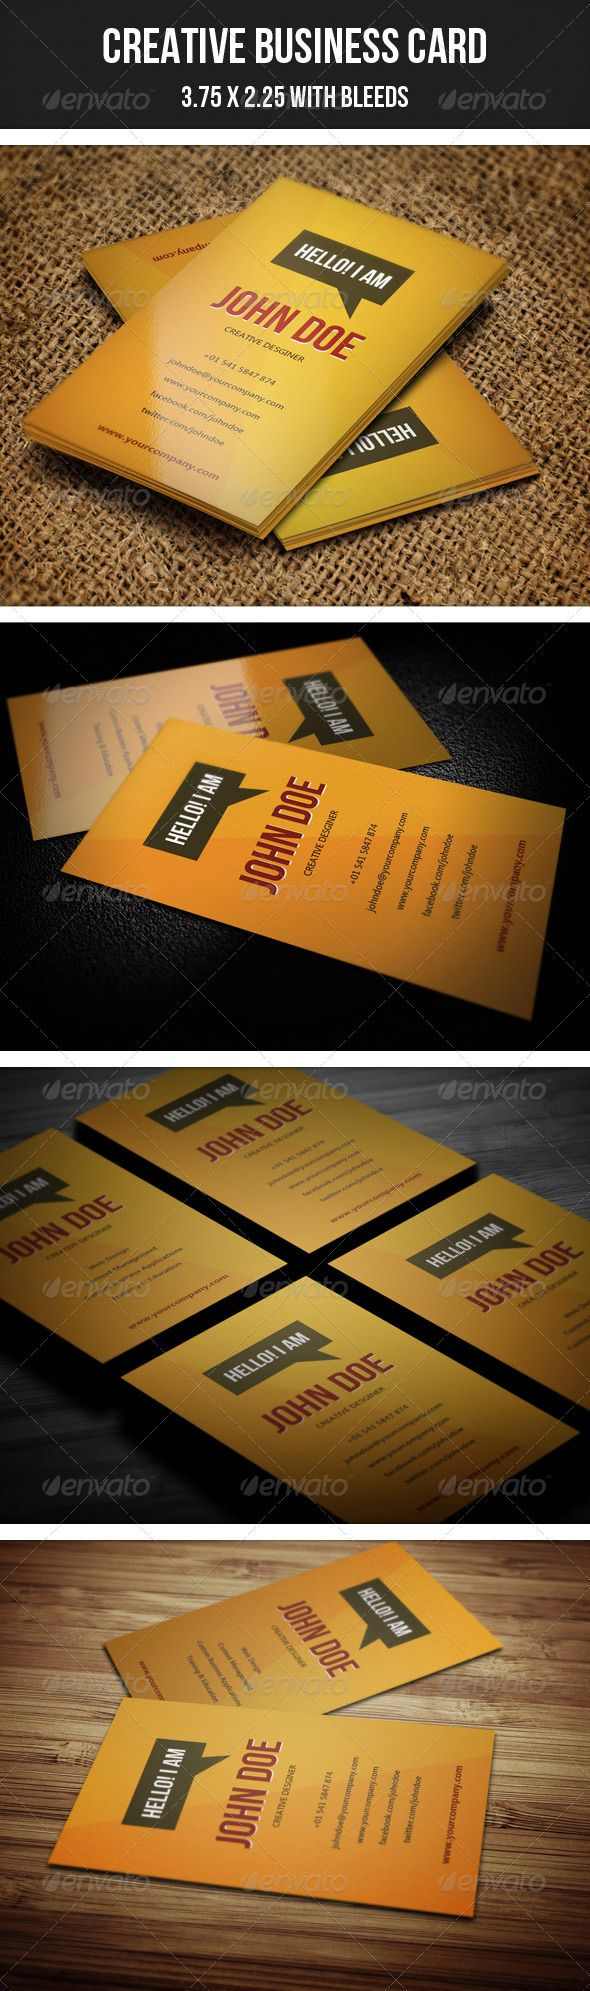 648 best cool business cards images on pinterest fonts arrows 648 best cool business cards images on pinterest fonts arrows and black roses magicingreecefo Choice Image